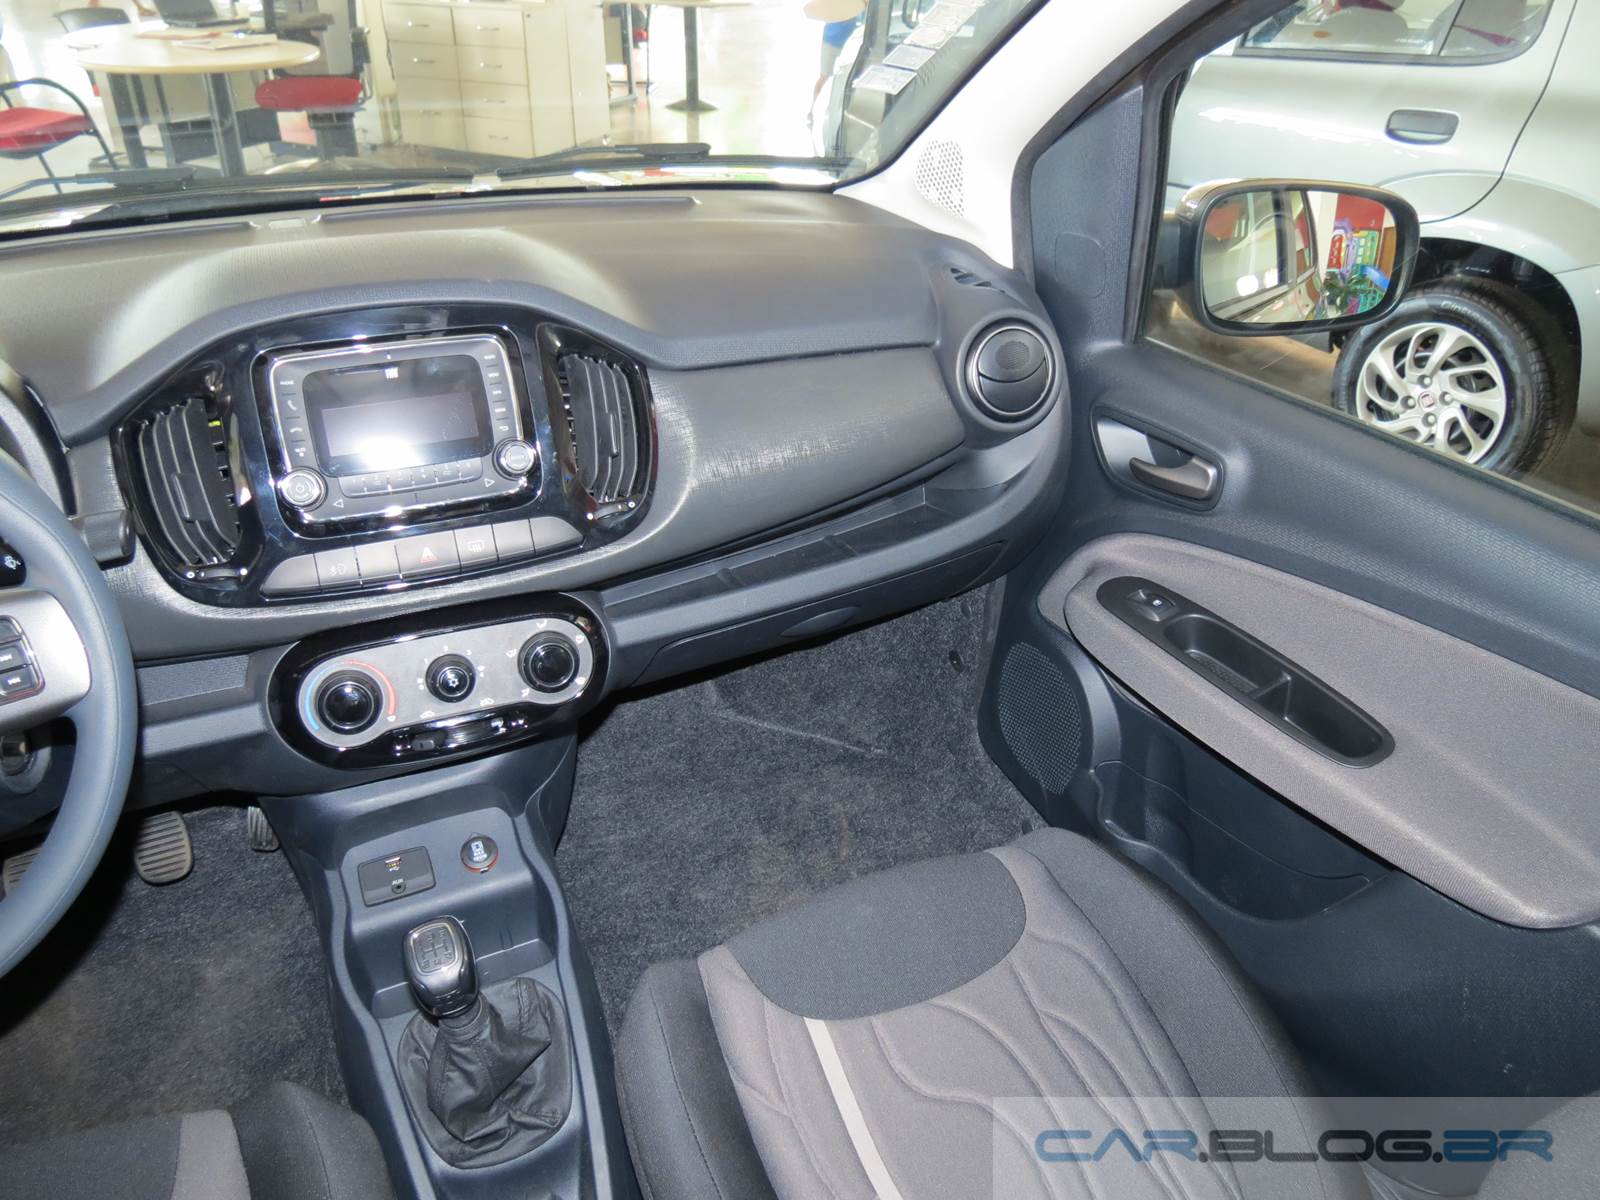 Smart Car Interior 2015 New Upcoming Cars 2019 2020 Ford Bronco Novo Fiat Uno Way Descontos De At R